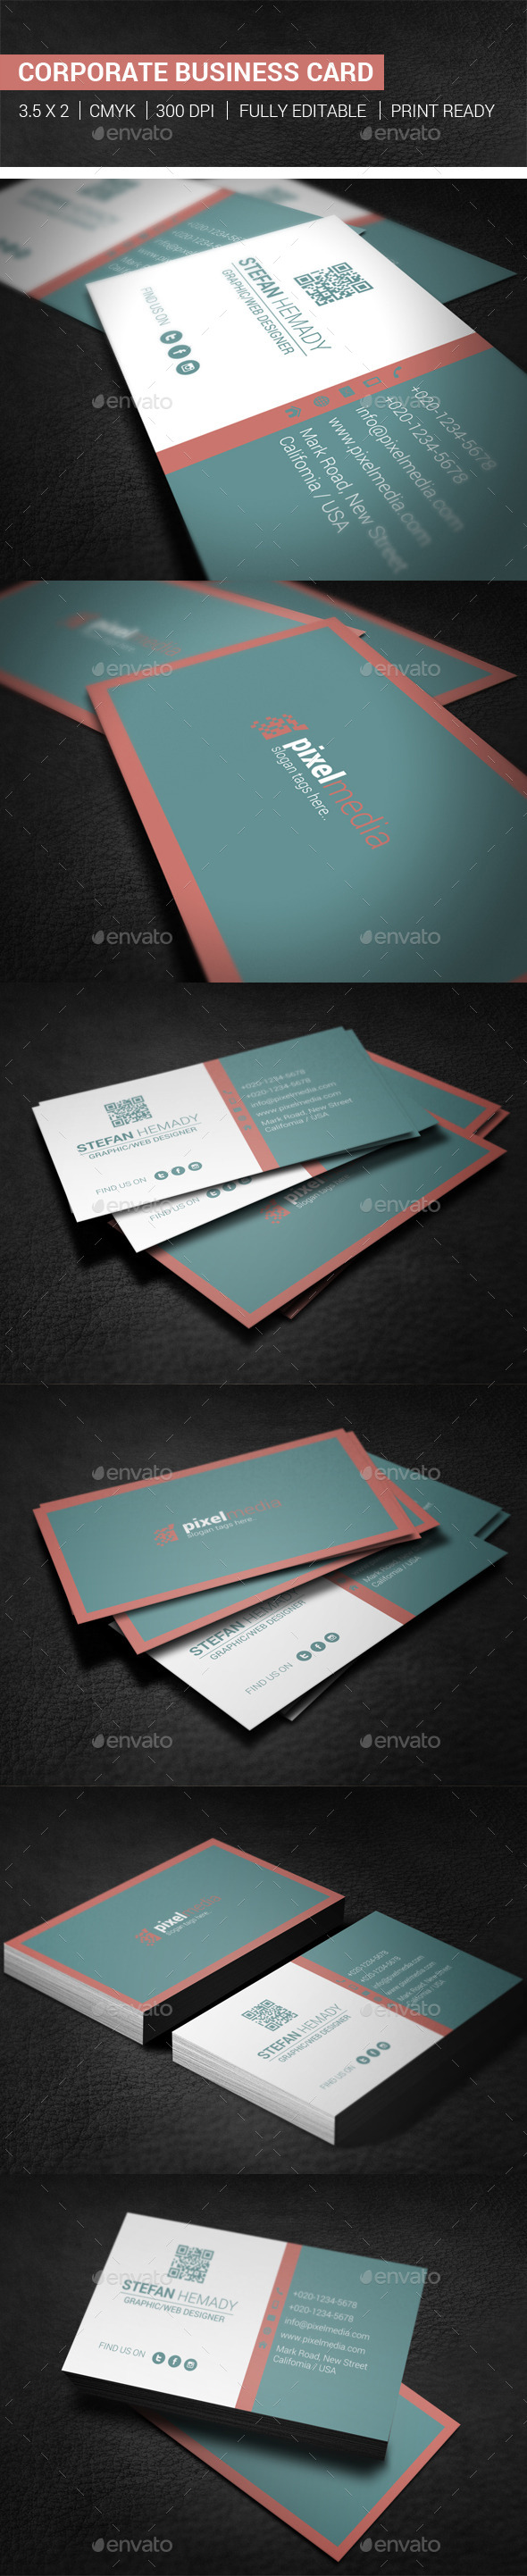 GraphicRiver Corporate Business Card 10288164